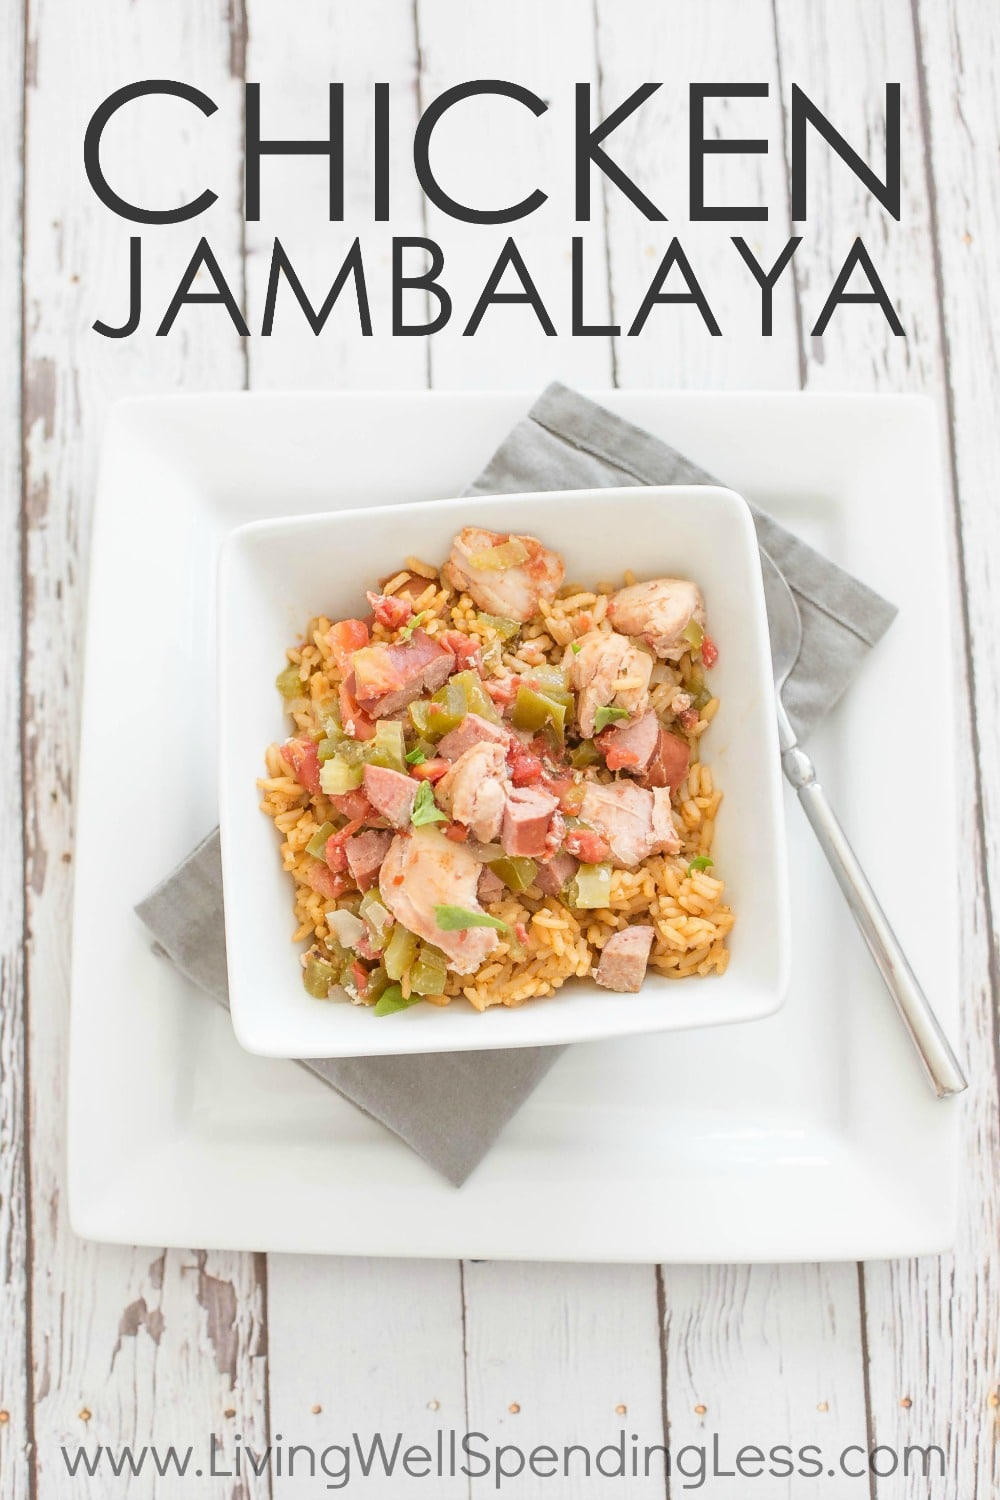 "Ready for a brand new flavor-packed recipe that whips up fast? This delicious and colorful chicken jambalaya our newest favorite ""cheater"" freezer recipe--easy, delicious, and practically mess-free. Better yet, it goes straight from the freezer to crockpot for an effortless weeknight meal that your whole family will love!"